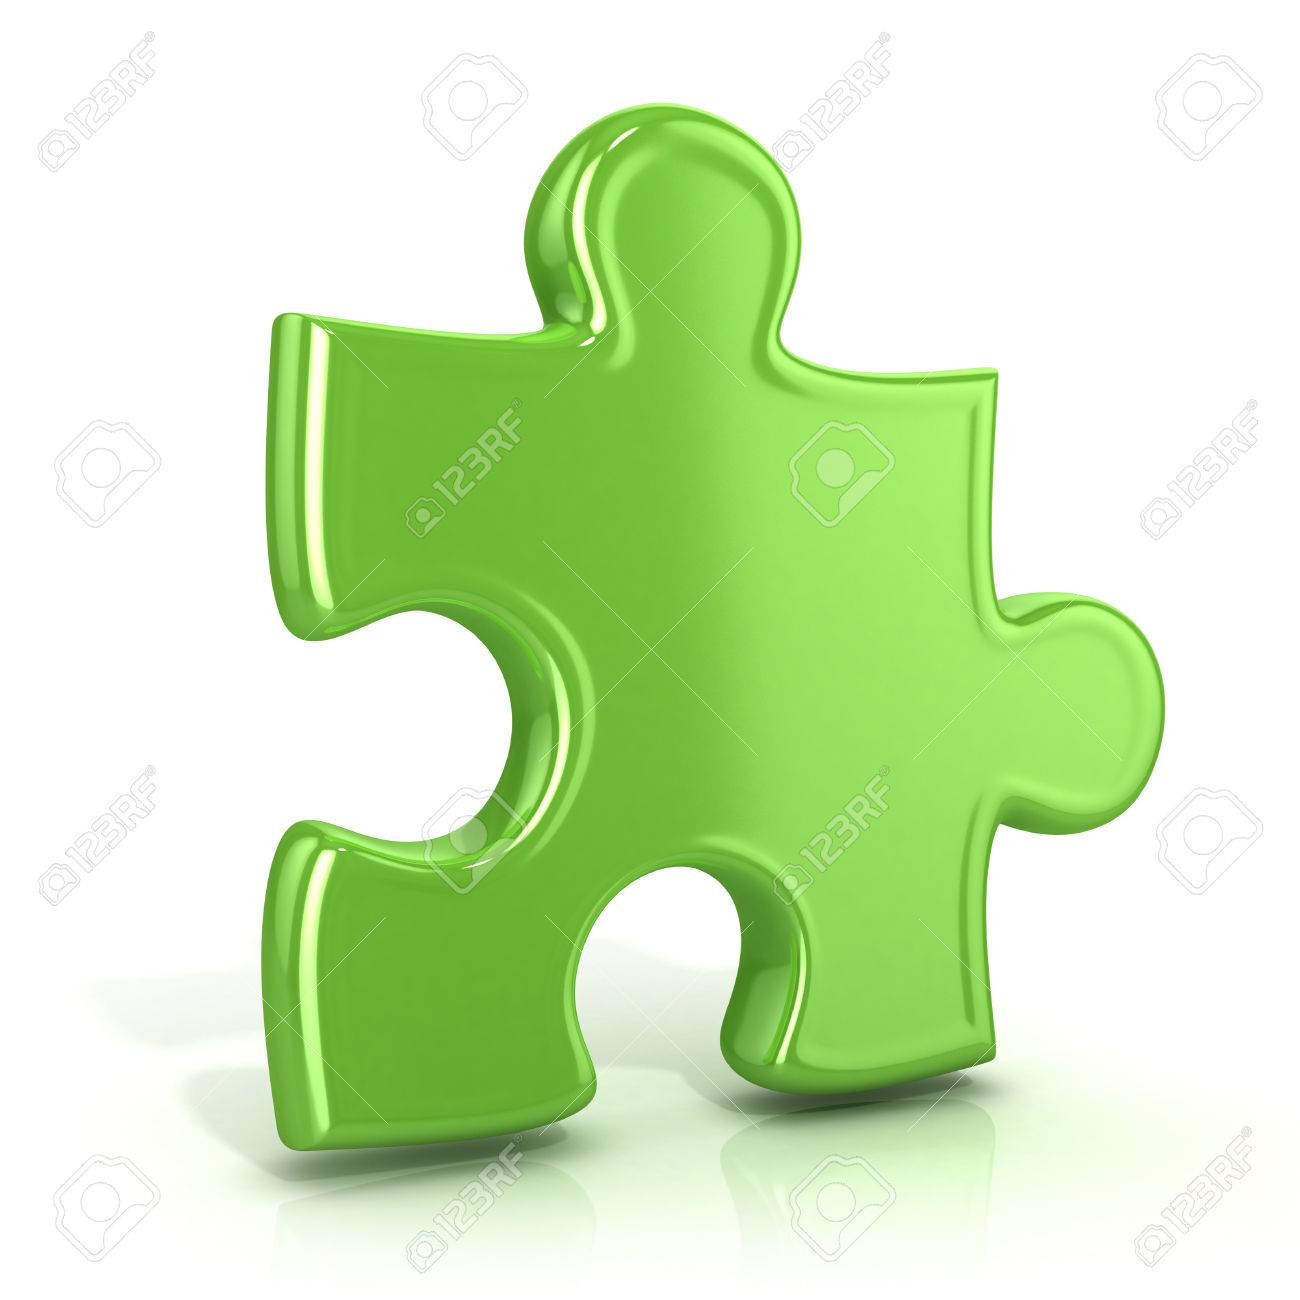 Single Green Standing Jigsaw Puzzle Piece 3D Render Icon Isolated On White Background Usual